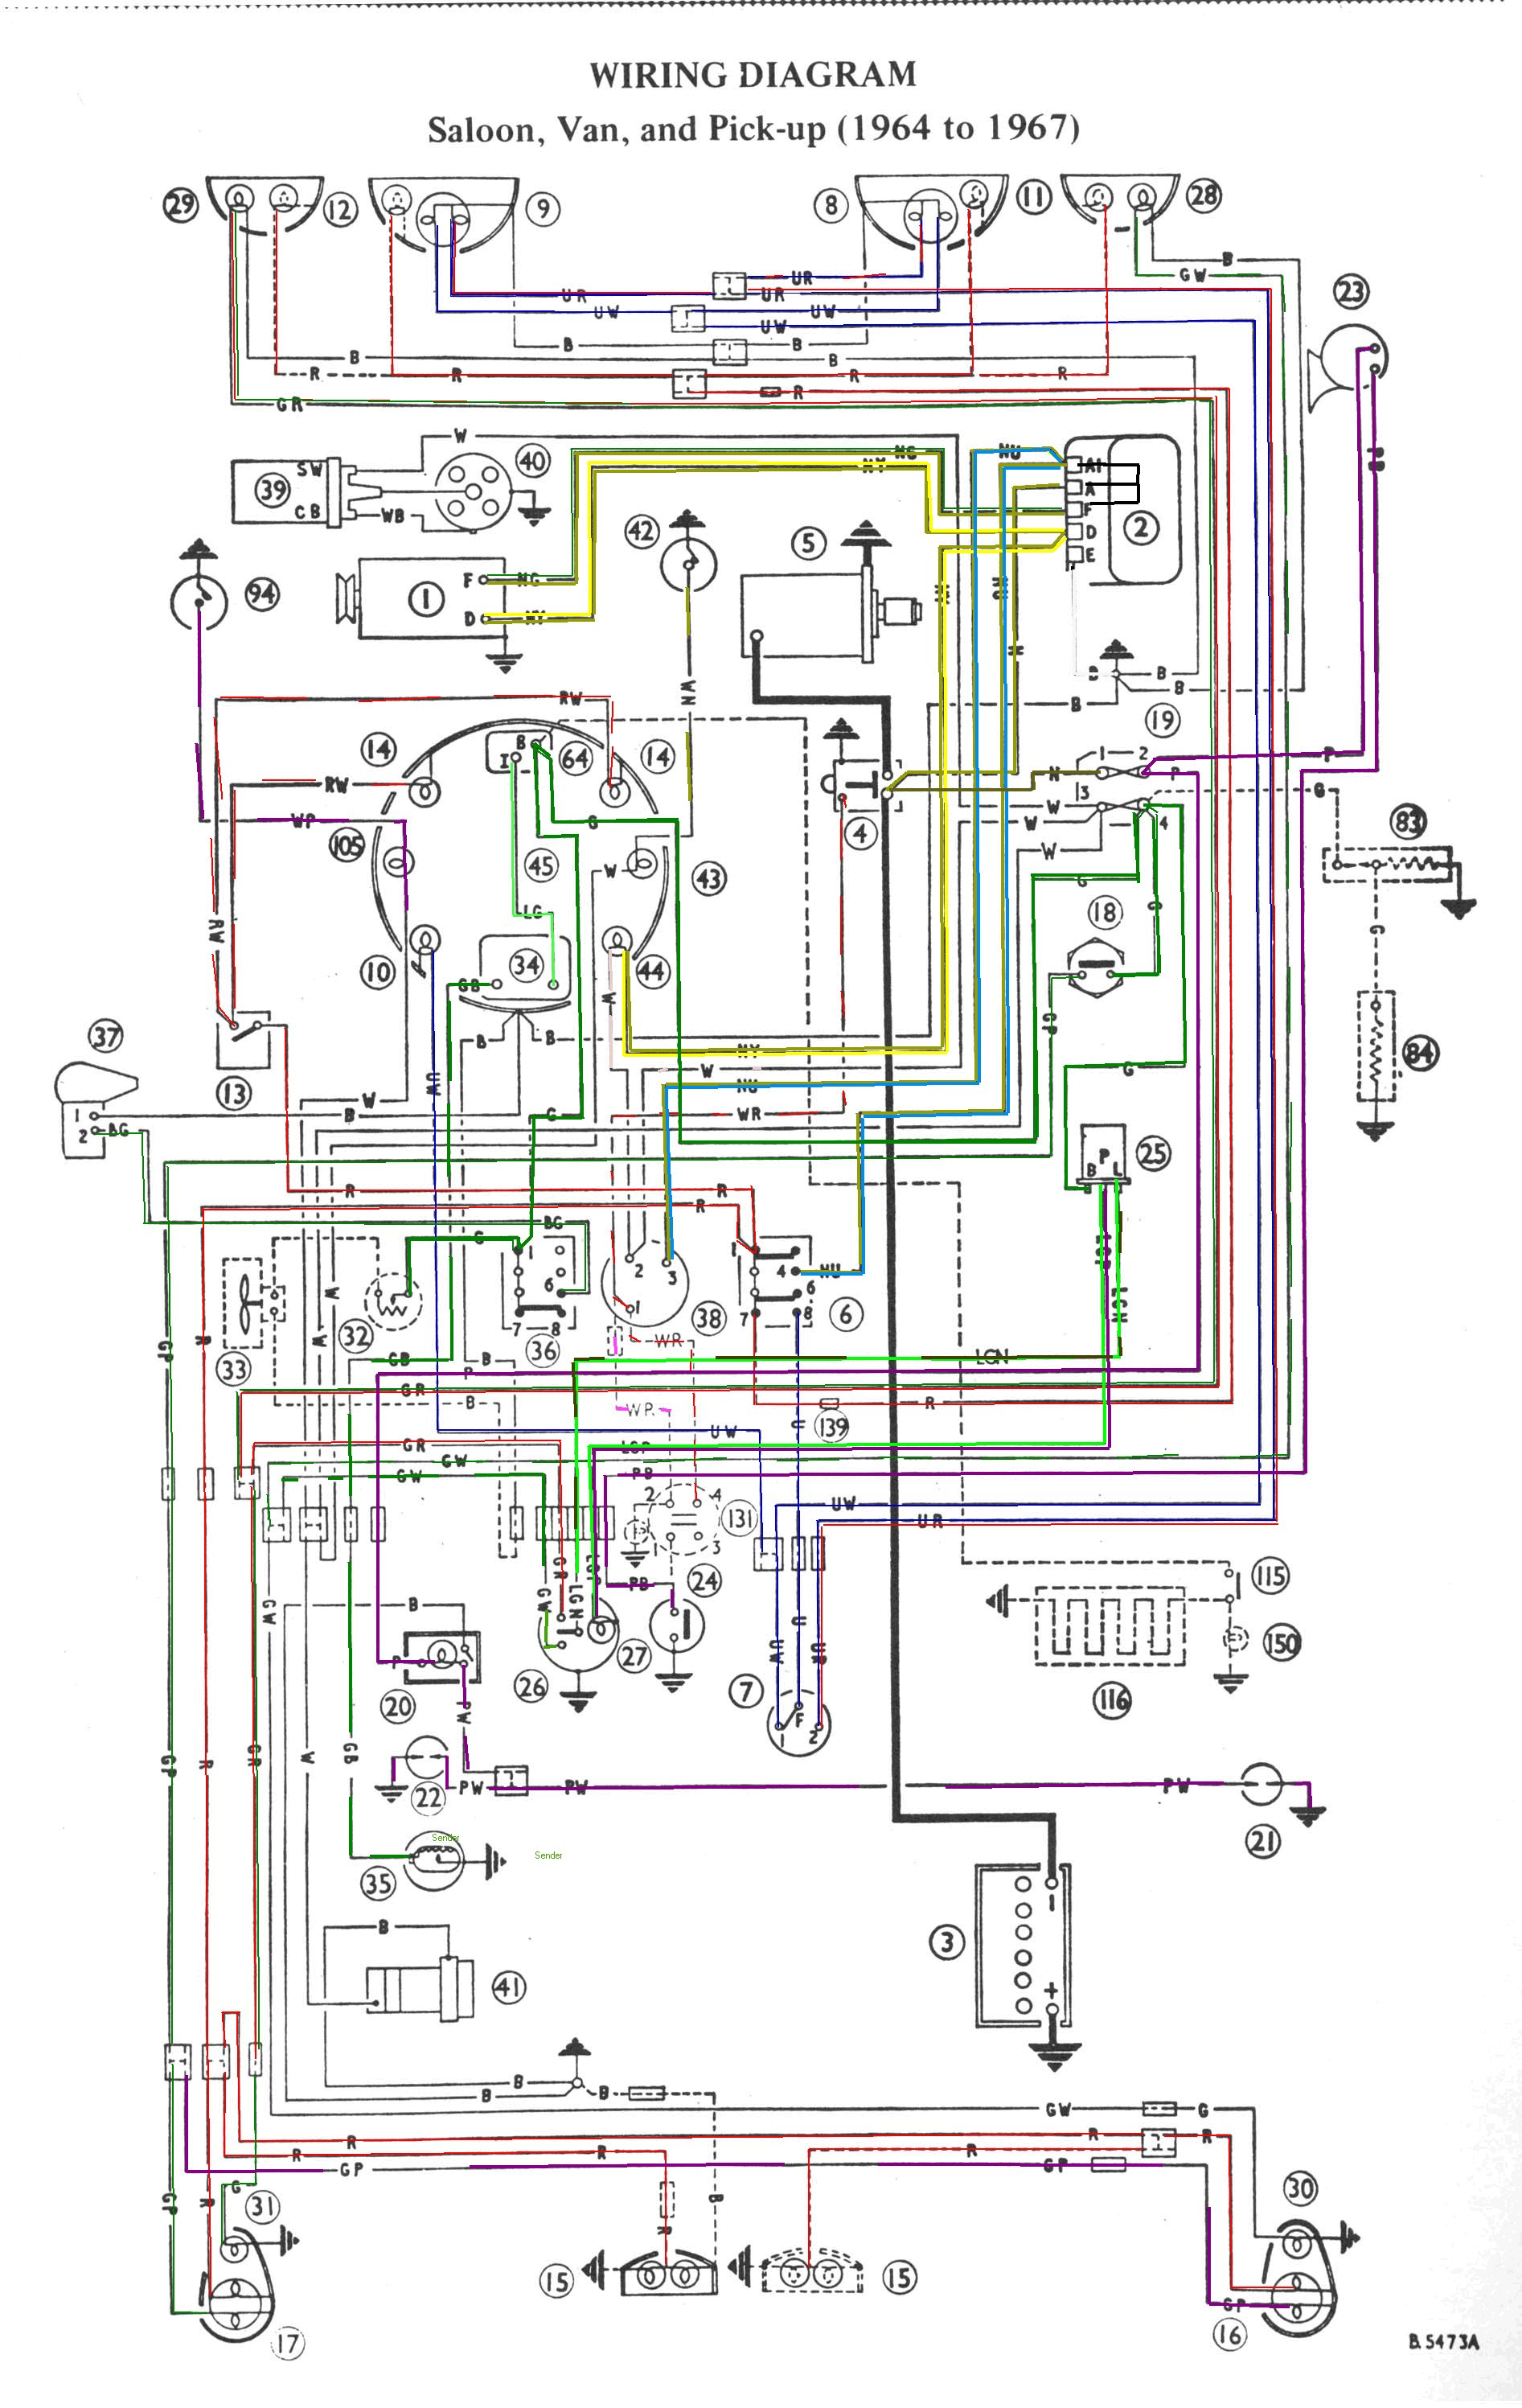 wiring diagram wiring 2 schematics index of /elf/ wiring diagram for 2 switches and 2 lights #3